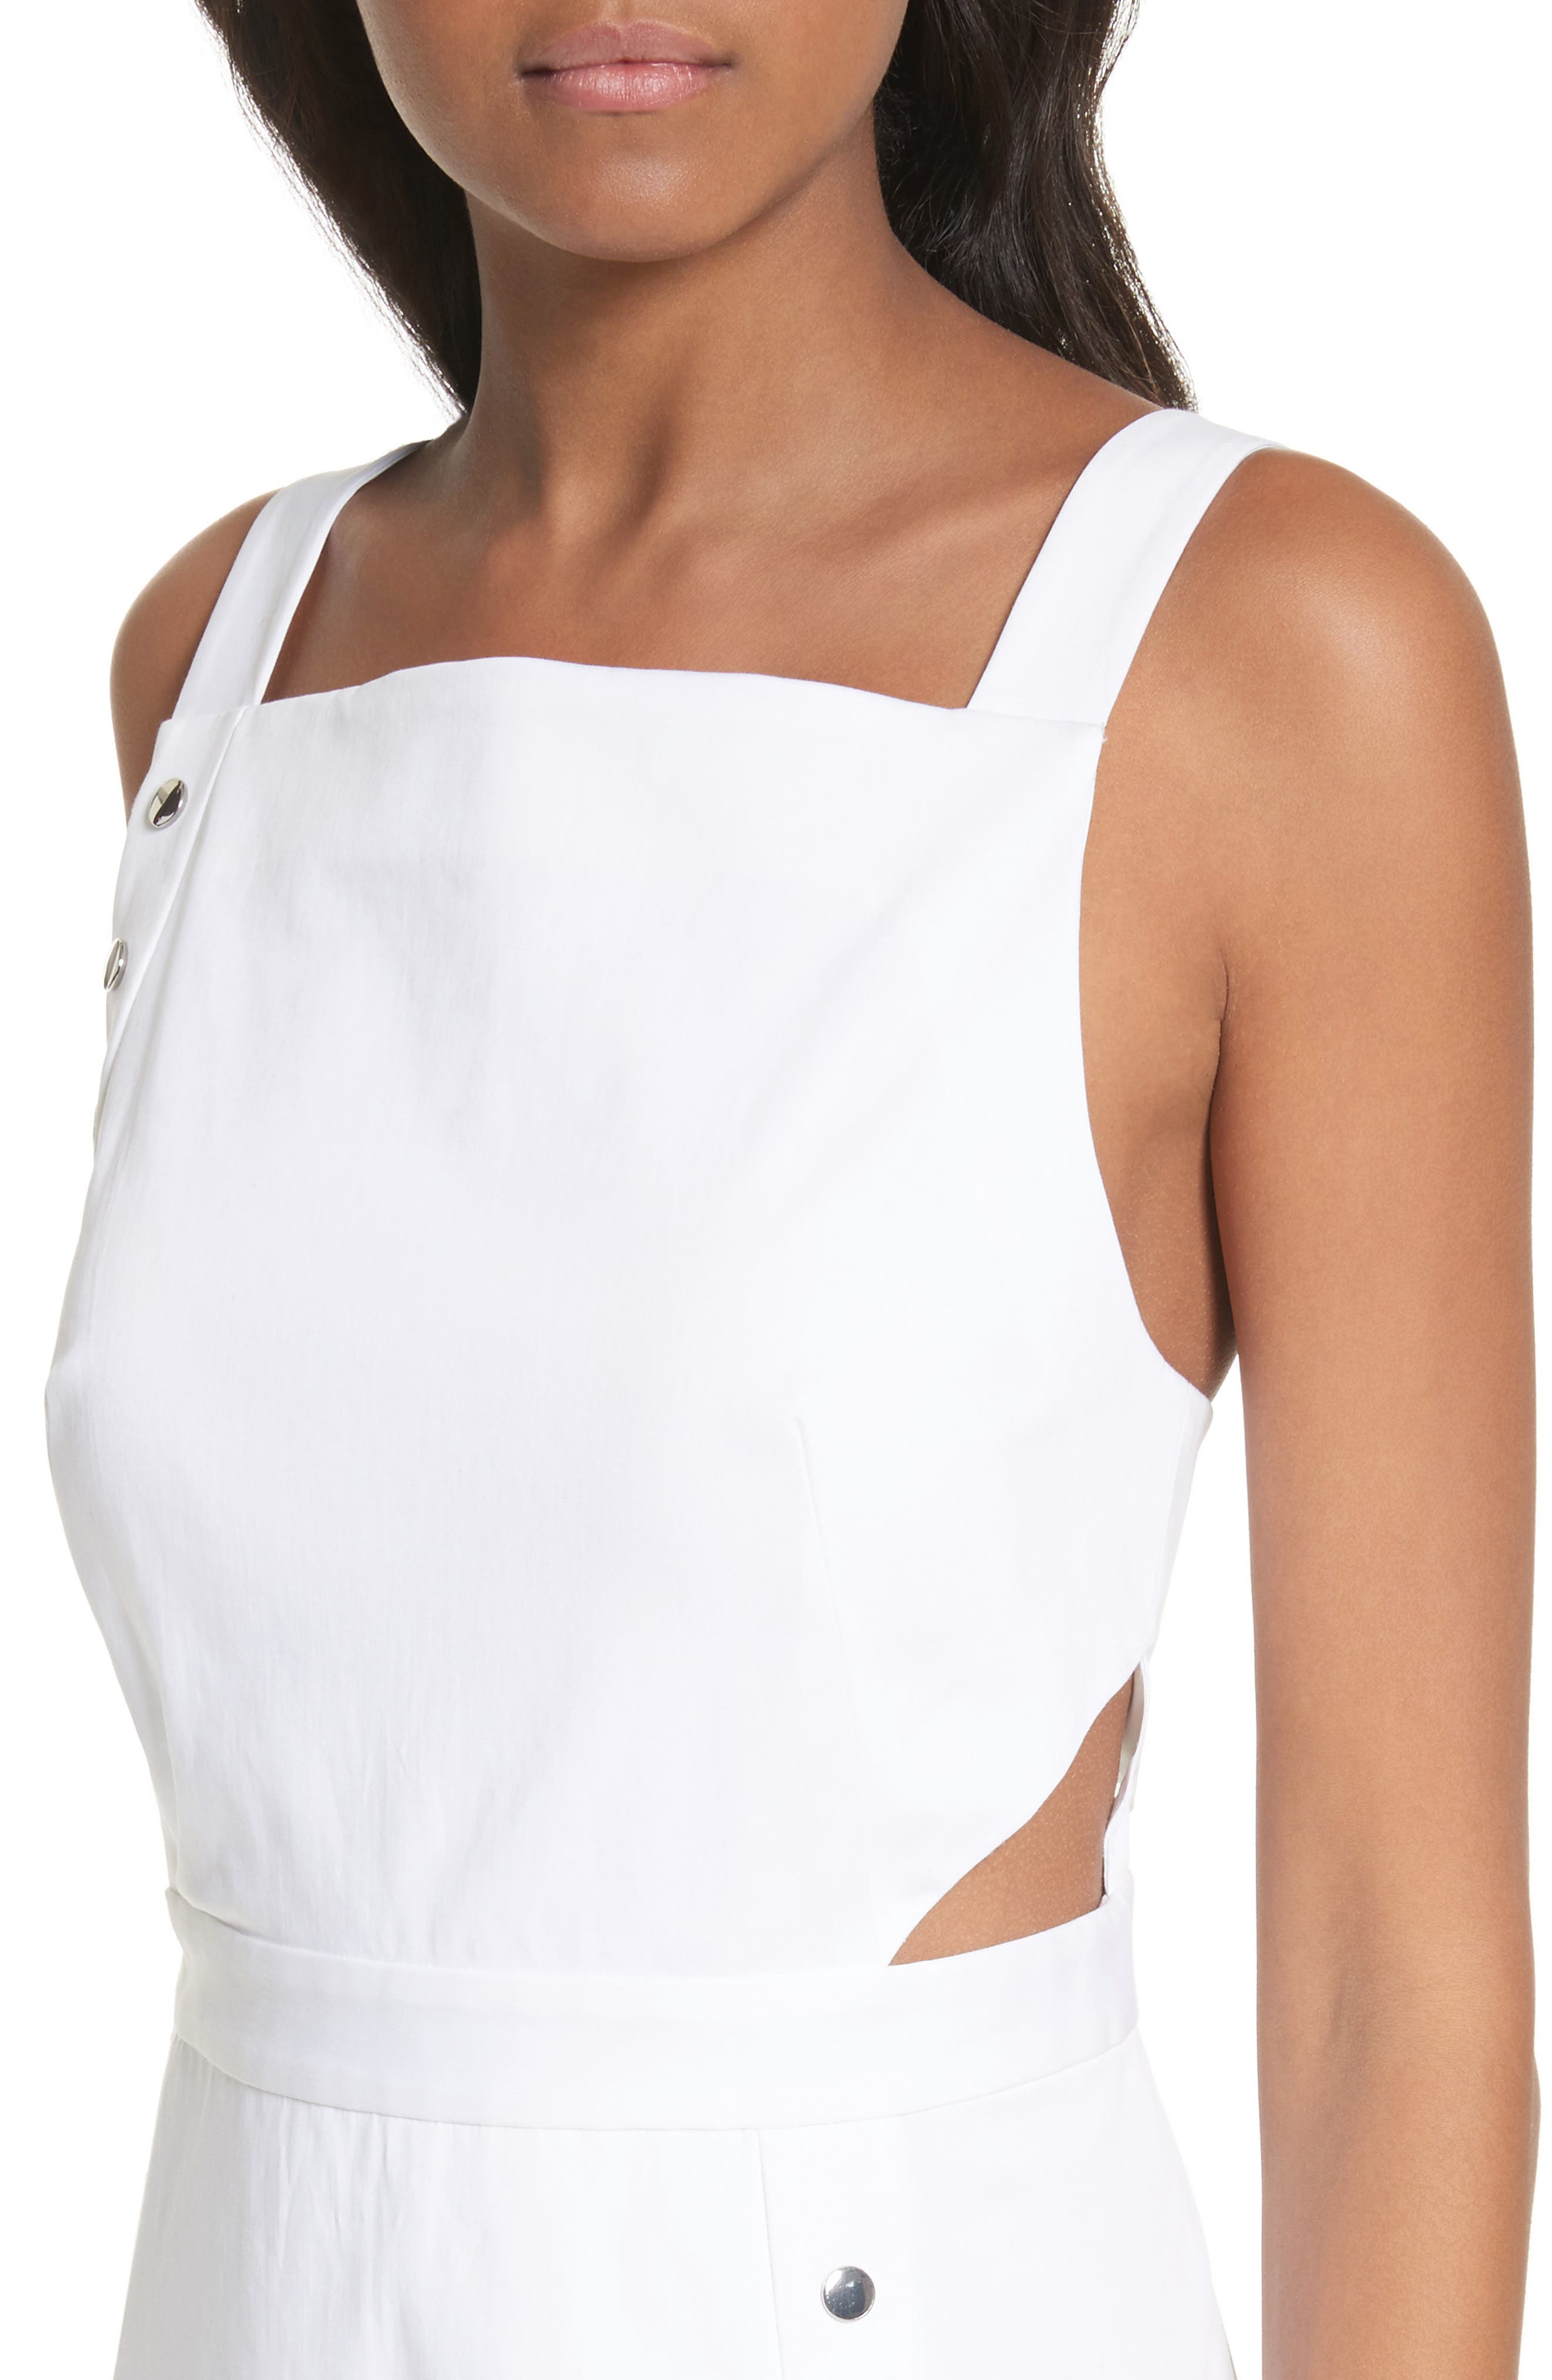 Crosby Snap Strappy Dress,                             Alternate thumbnail 6, color,                             White